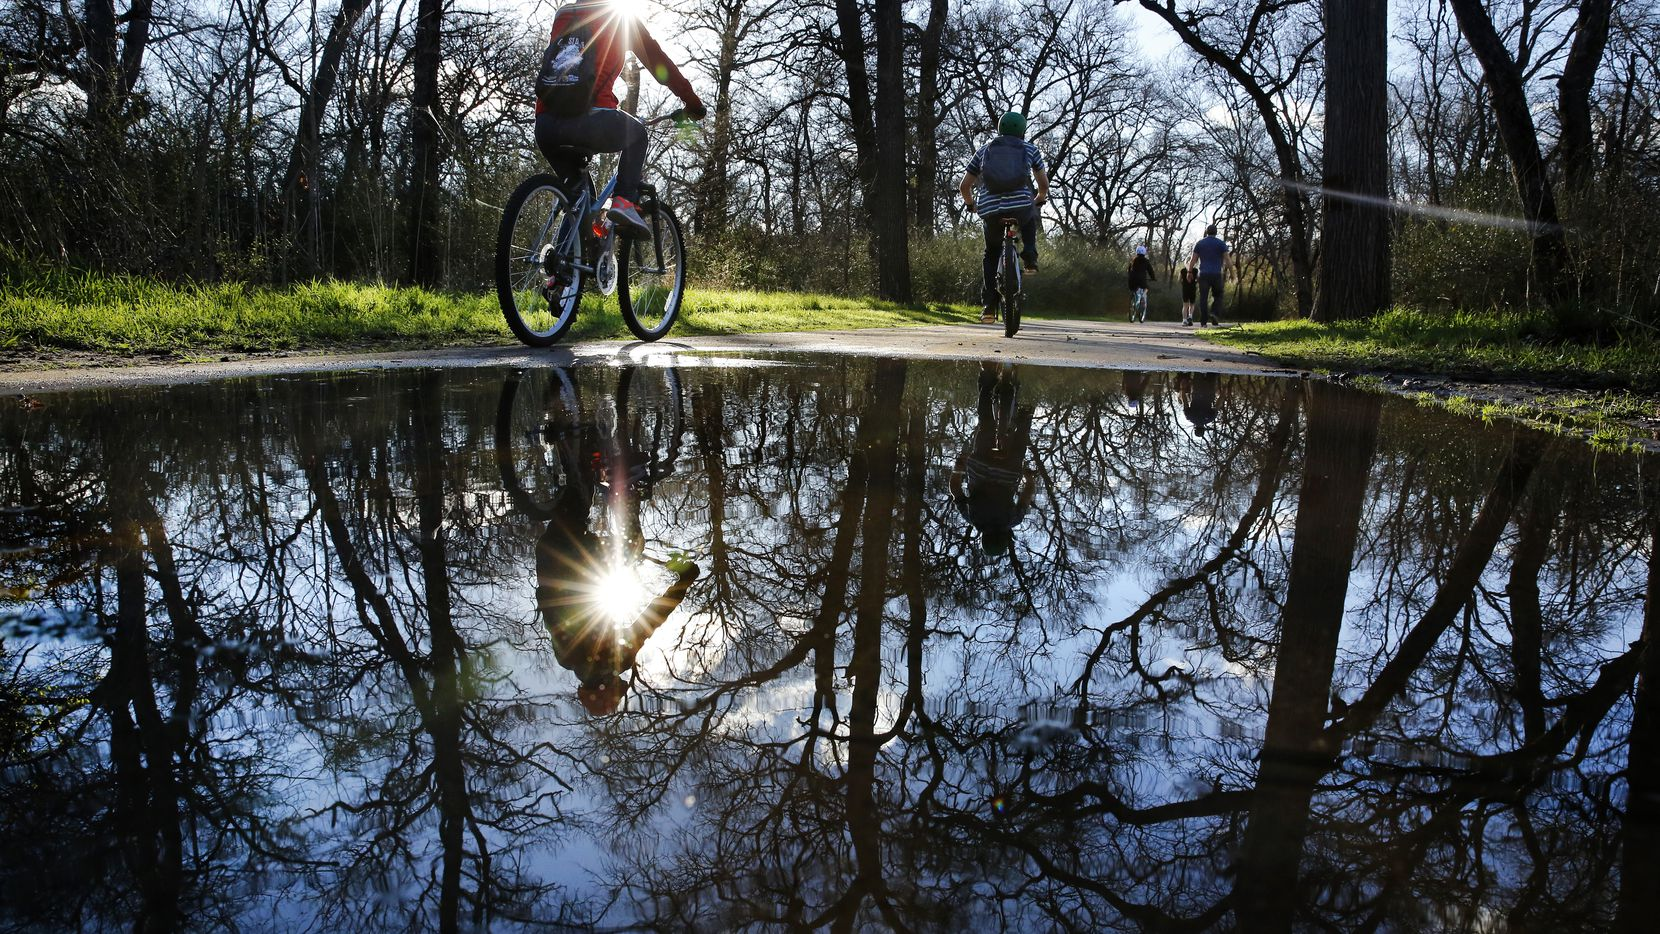 After a rainy period, cyclists and walkers navigated the water puddles along the paths of River Legacy Parks in Arlington.